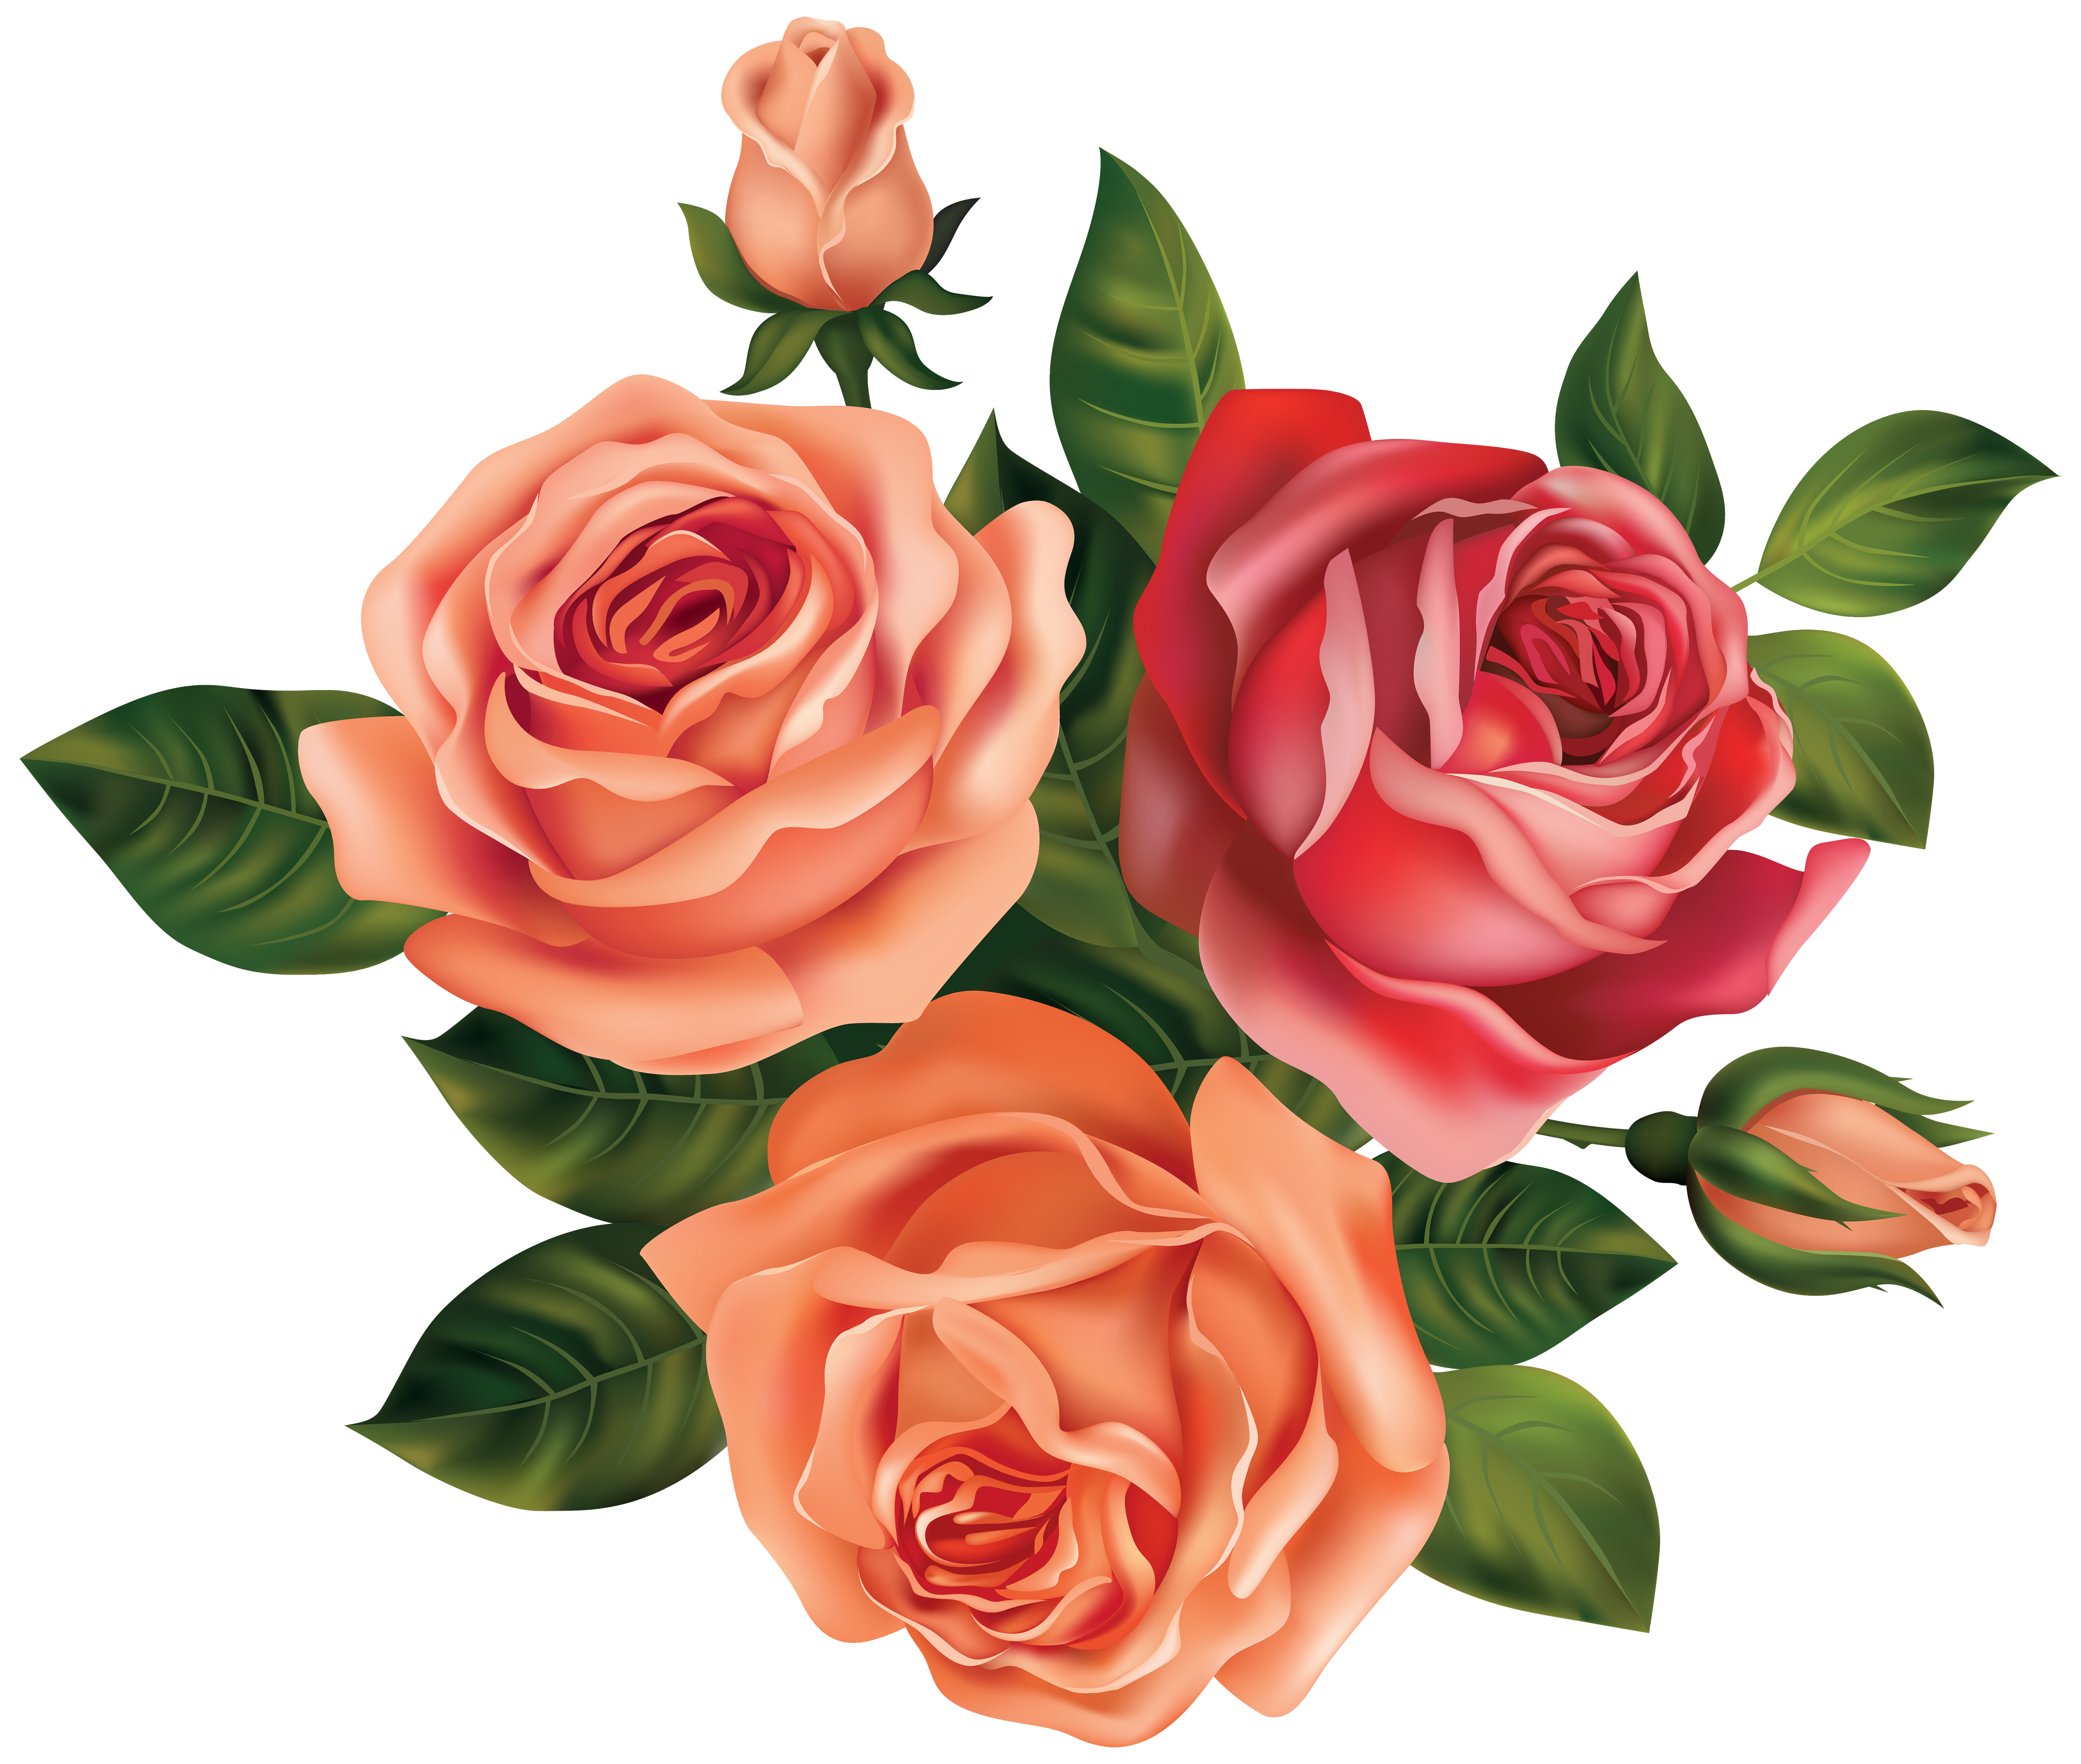 graphic transparent stock Beautiful image gallery yopriceville. Roses clipart.